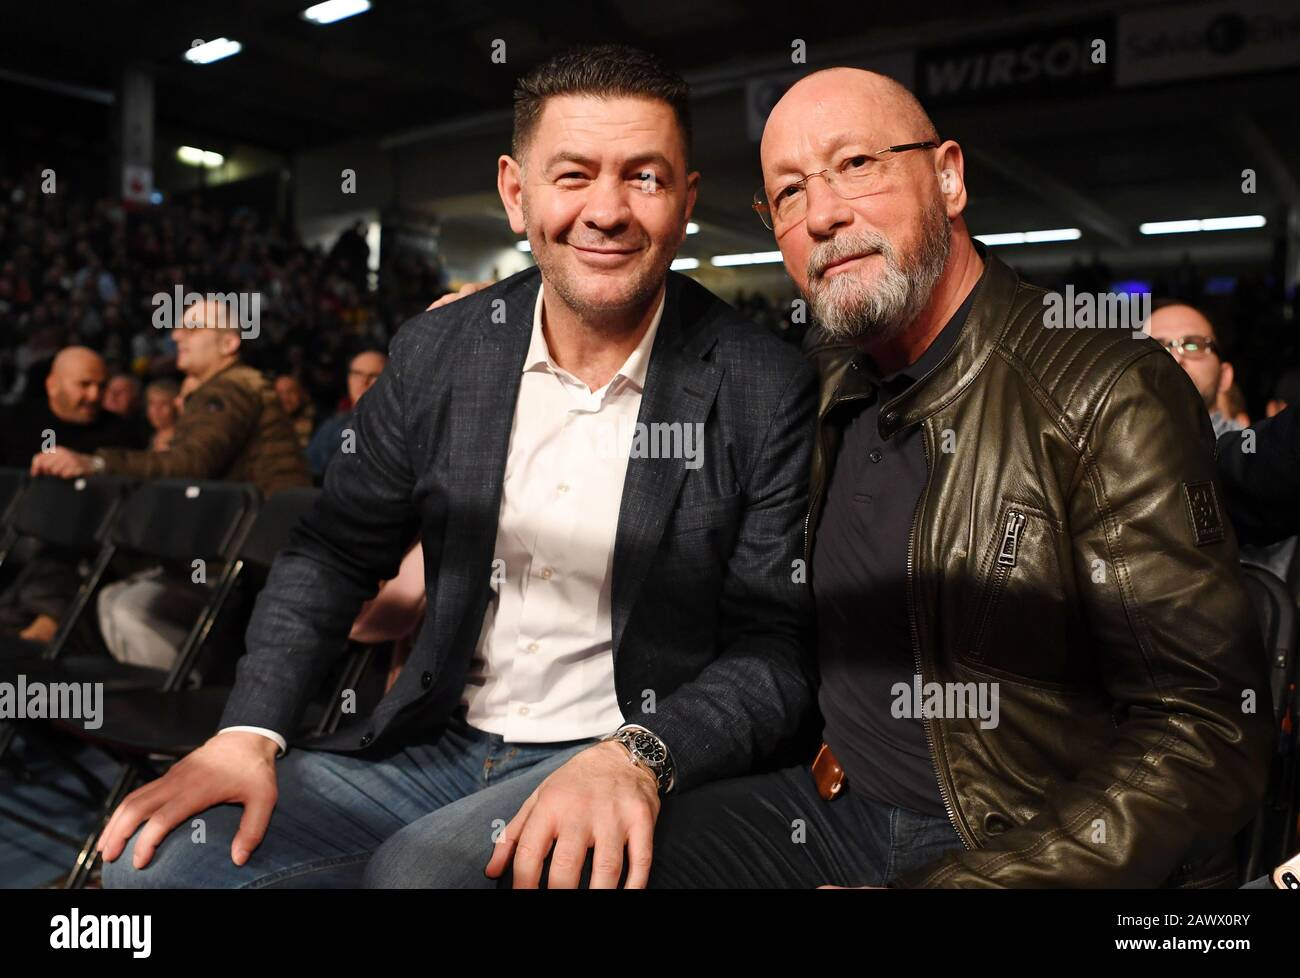 Luan Krasniqi High Resolution Stock Photography And Images Alamy